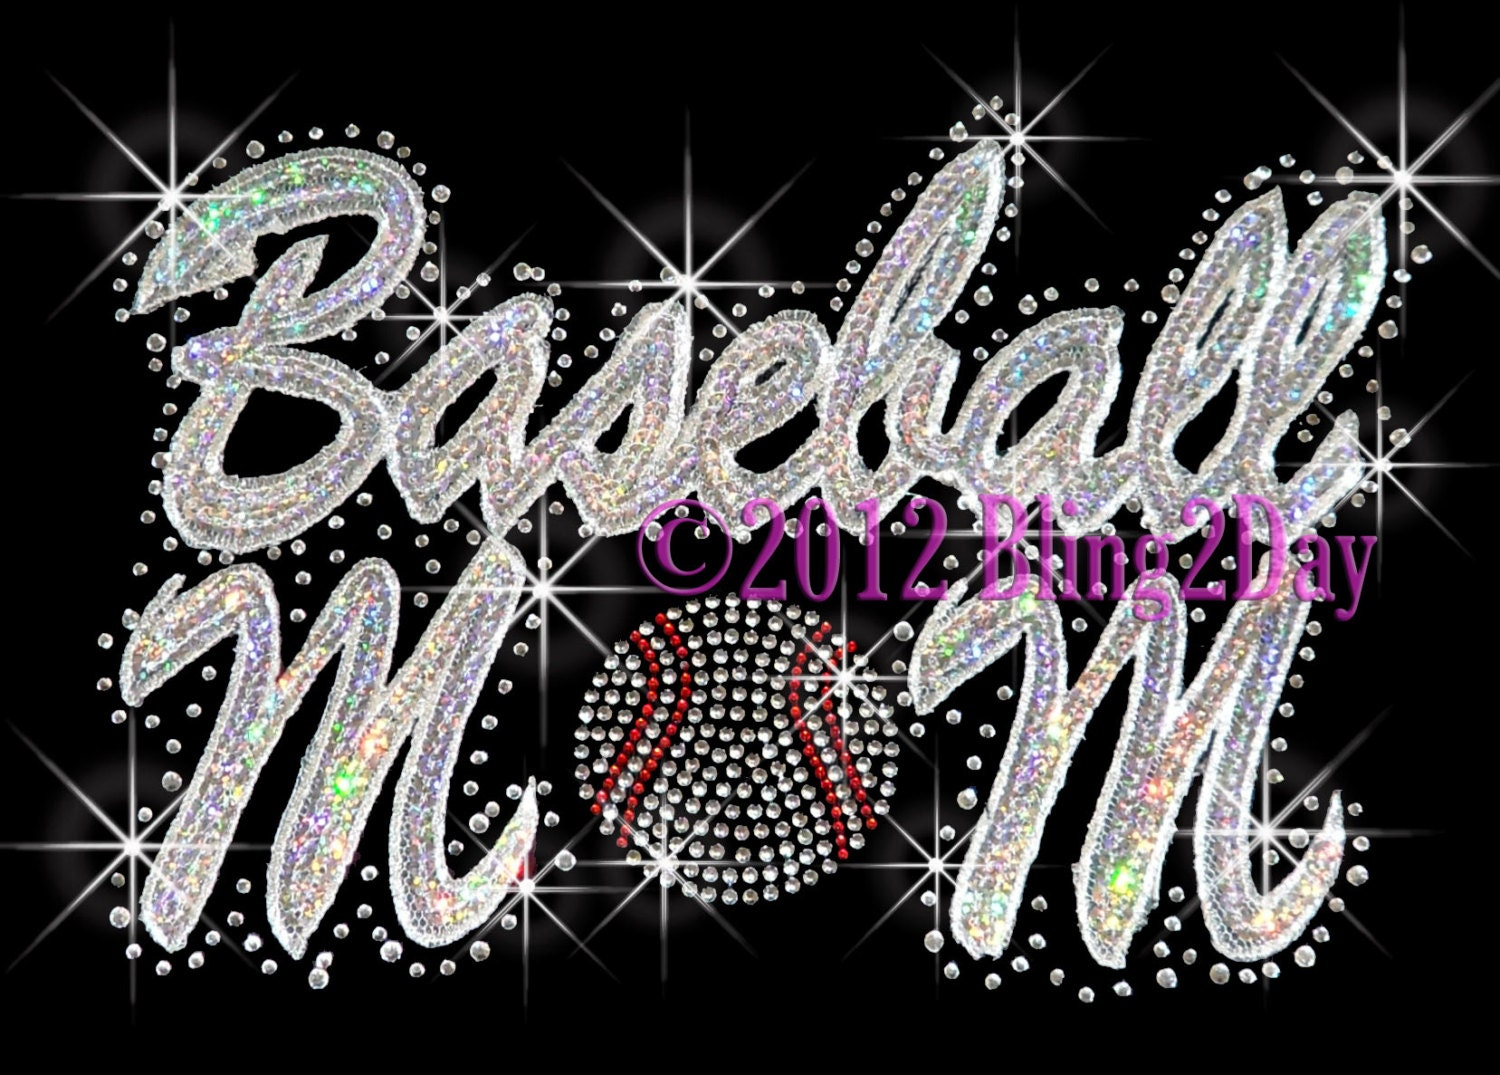 Baseball Mom Silver Hologram Sequins Embroidered Patch - Iron on Rhinestone Transfer Hot Fix Bling Sports - DIY - RhinestonePalace